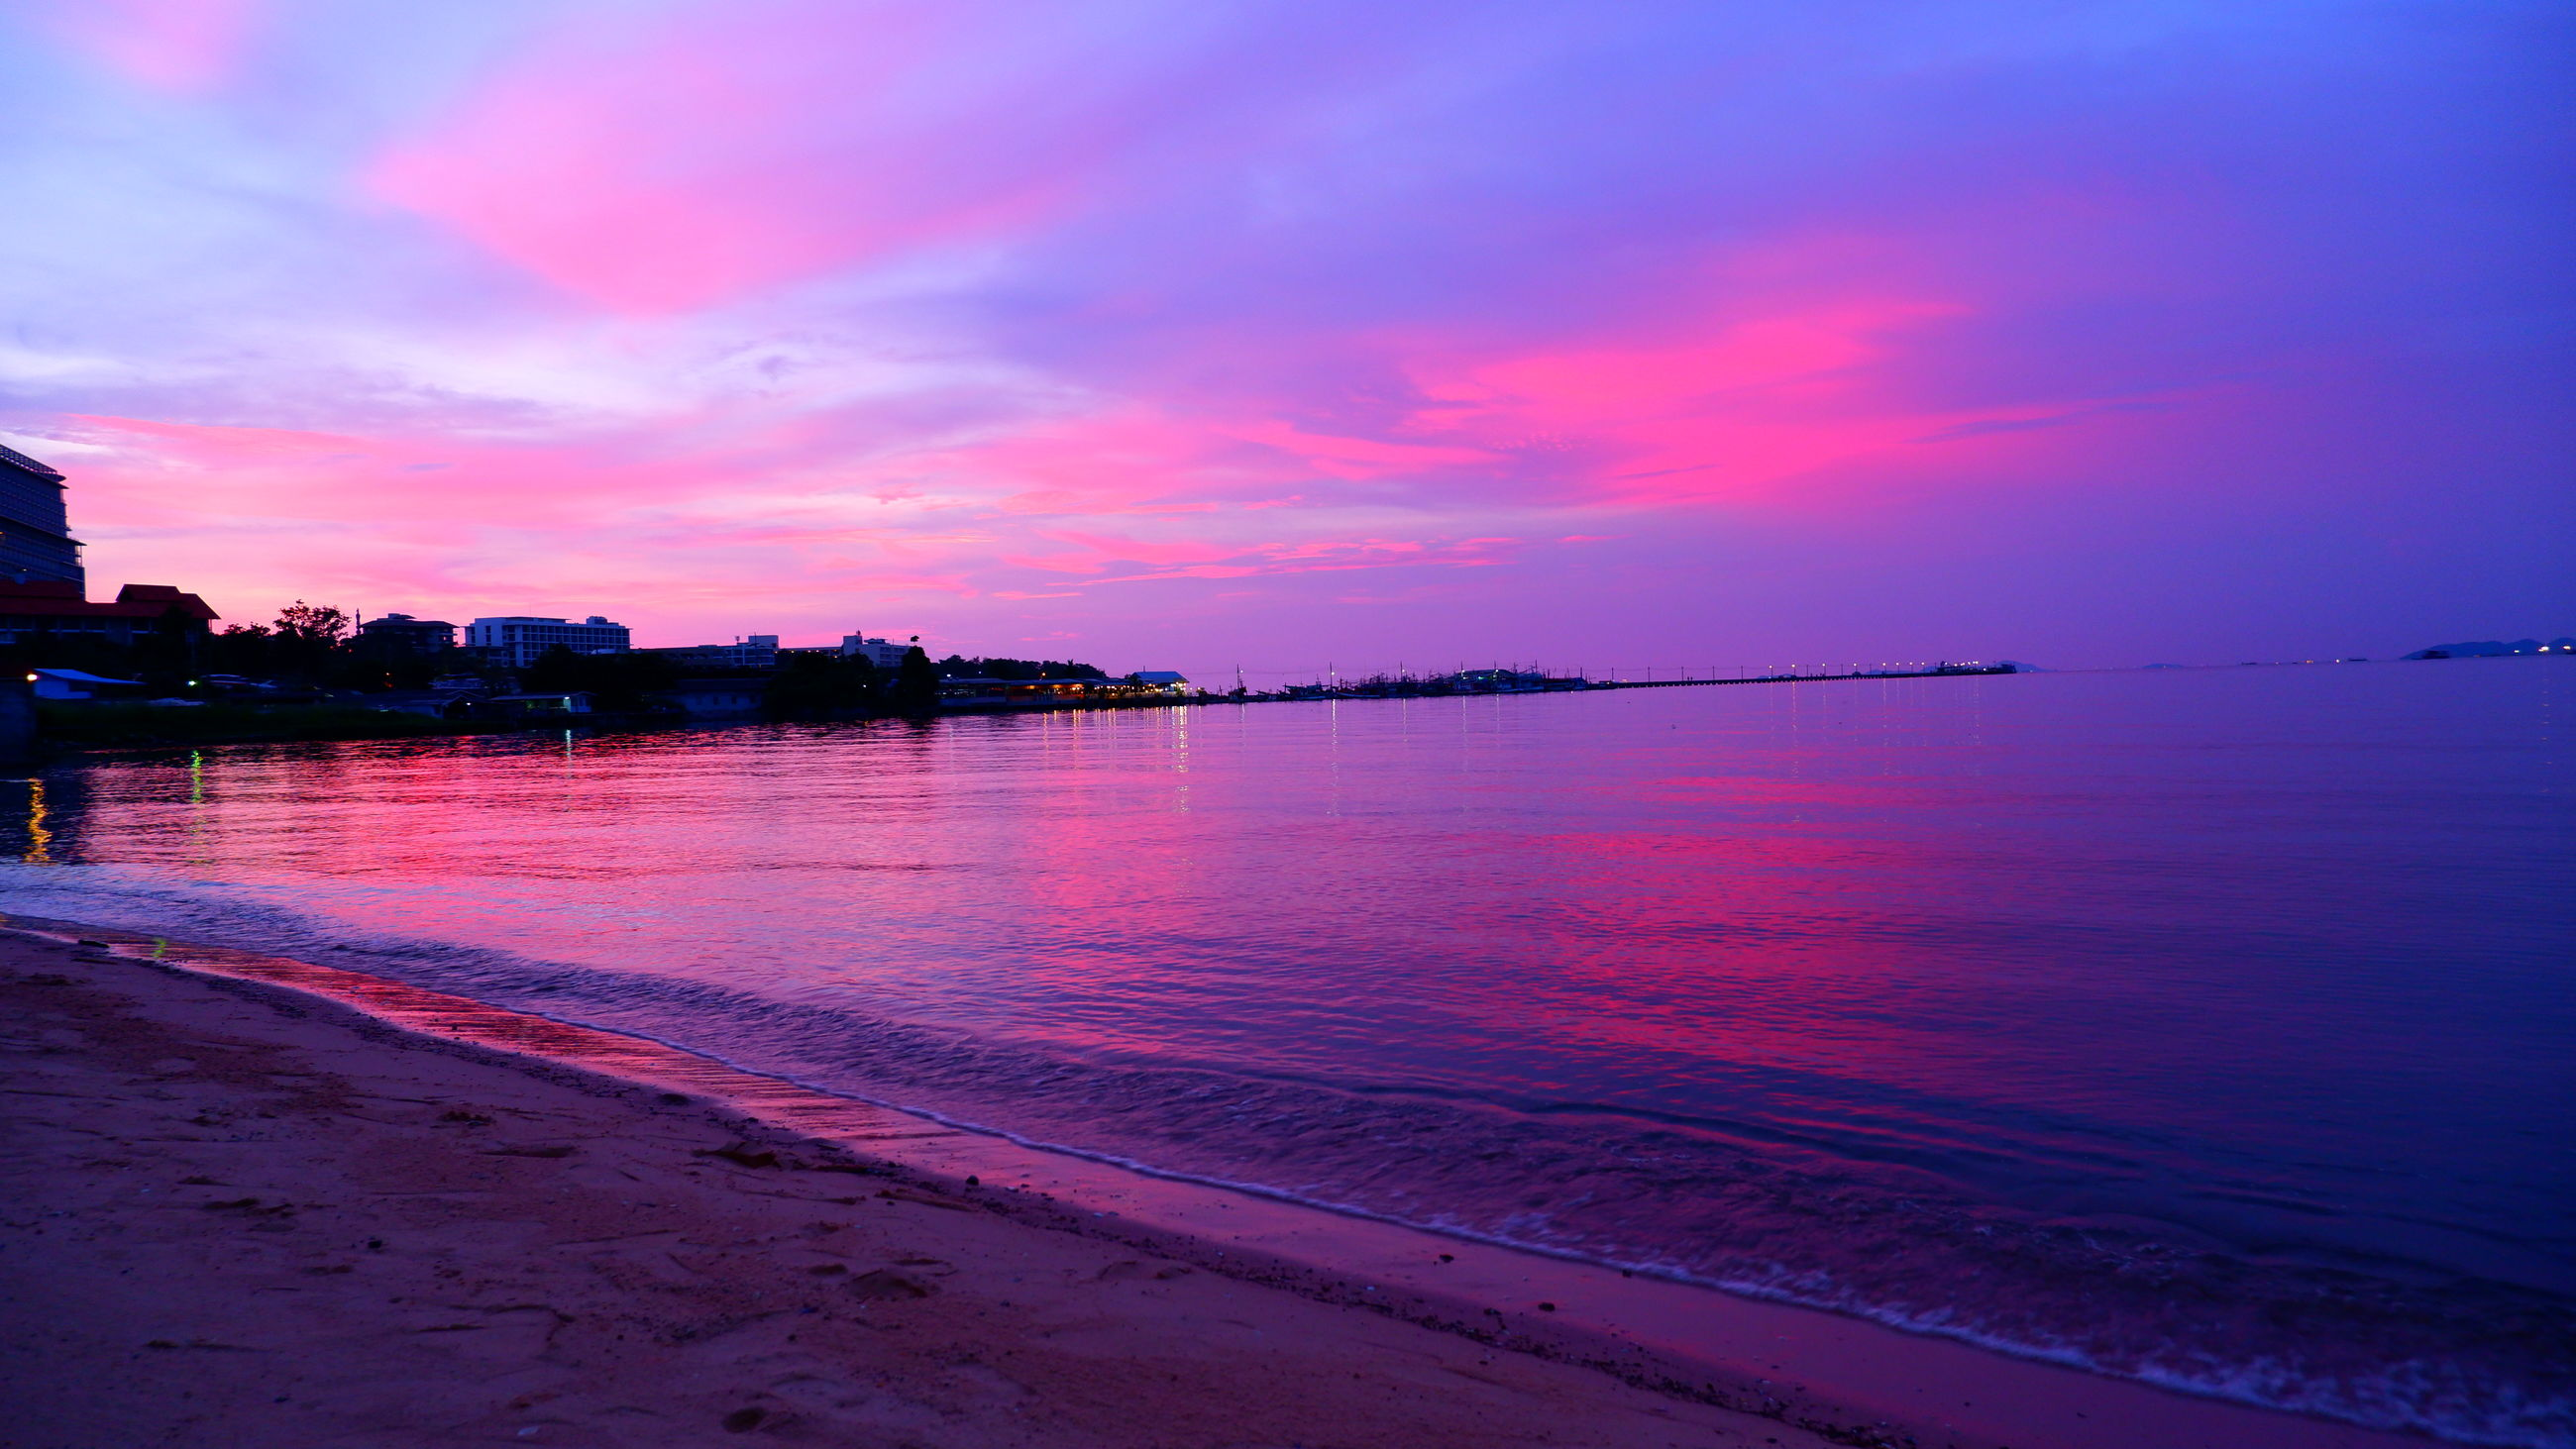 water, sky, sea, sunset, horizon, beach, cloud, dawn, land, beauty in nature, scenics - nature, nature, reflection, afterglow, tranquility, ocean, evening, travel destinations, architecture, coast, tranquil scene, landscape, city, shore, travel, outdoors, pink, wave, holiday, body of water, no people, vacation, trip, environment, dramatic sky, idyllic, night, tourism, purple, multi colored, sand, silhouette, coastline